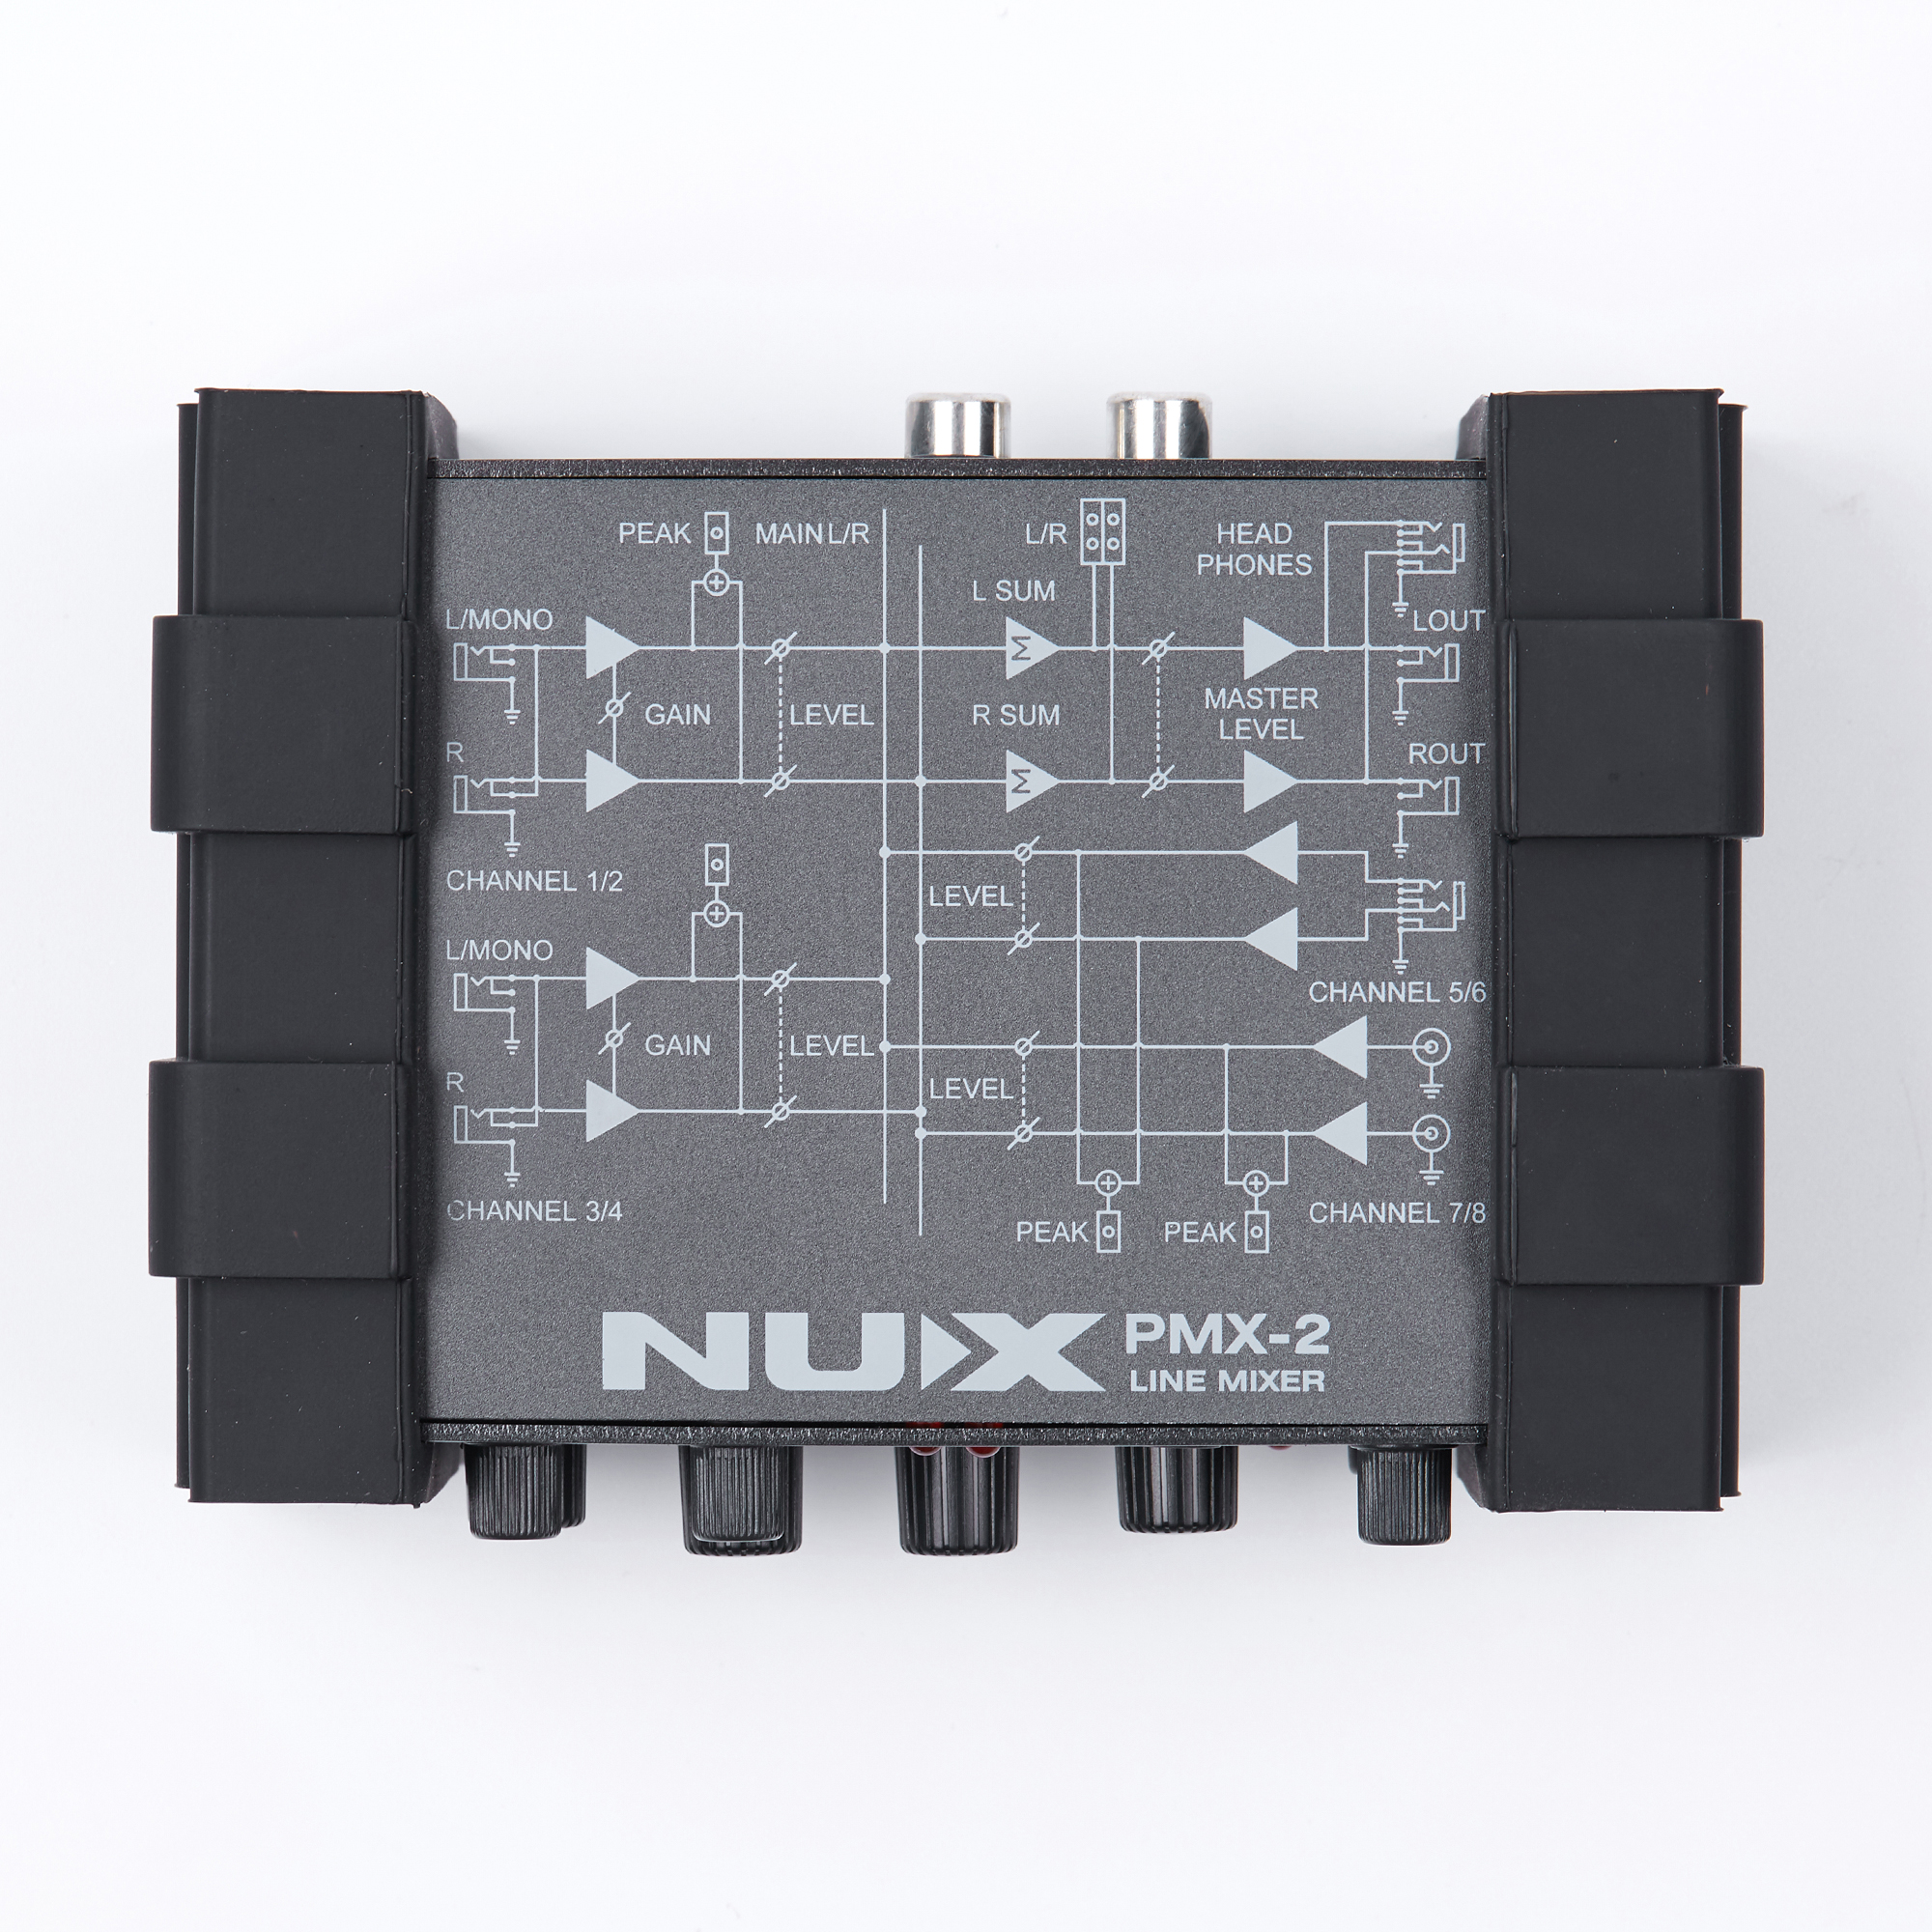 Gain Control 8 Inputs and 2 Outputs NUX PMX-2 Multi-Channel Mini Mixer 30 Musical Instruments Accessories for Guitar Bass Player cms 13 4 фигурка рыбка pavone 782243